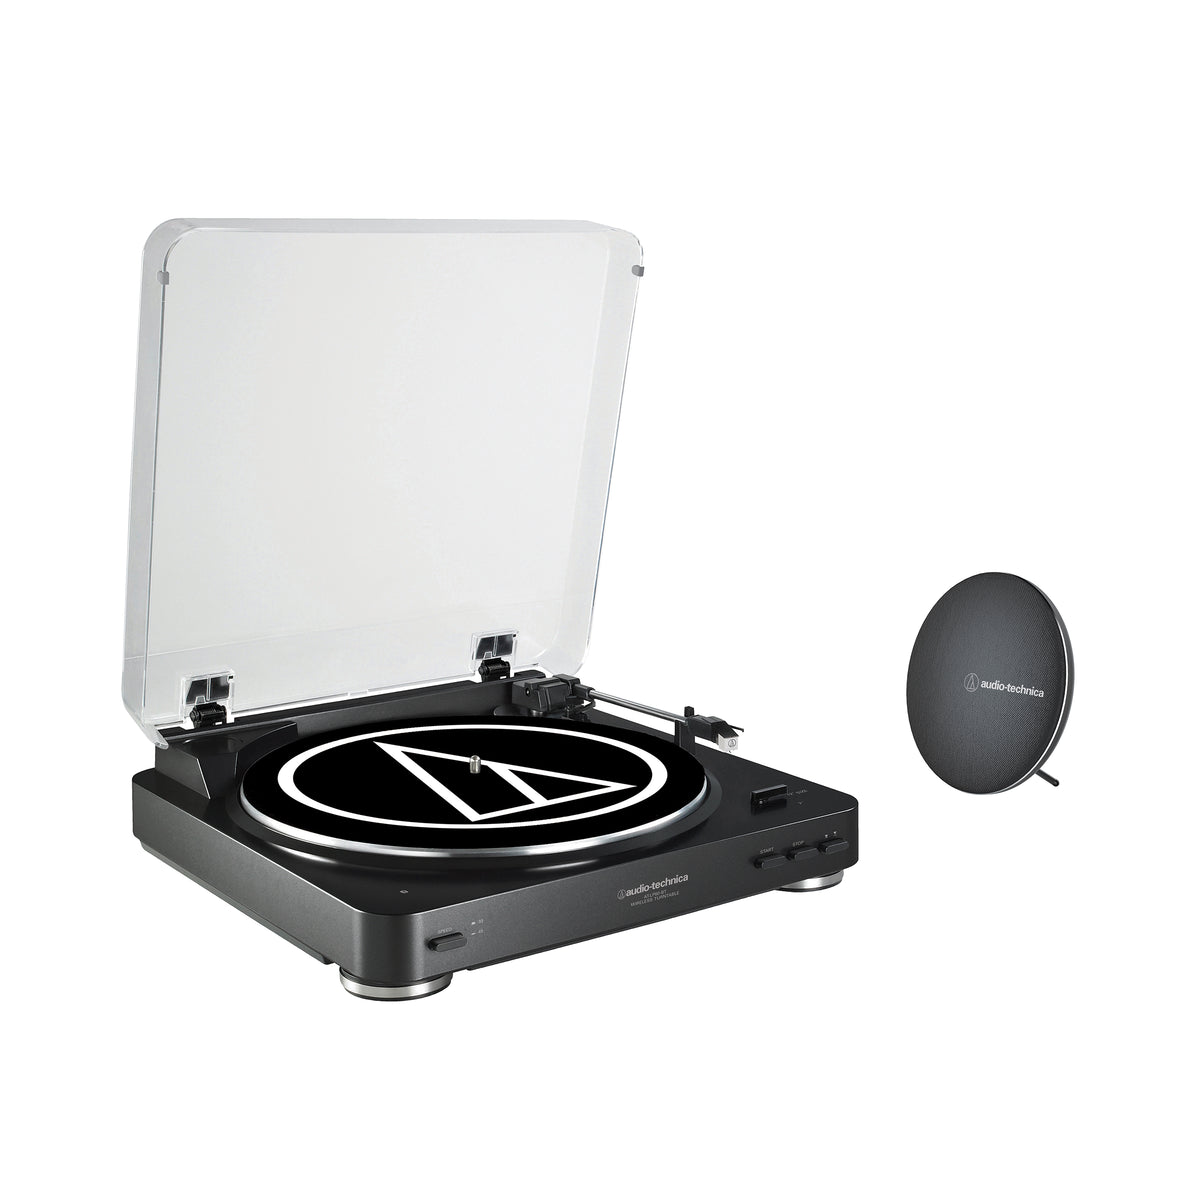 Audio-Technica: AT-LP60SPBT-BK Wireless Turntable & Speaker Bundle - Black (AT-LP60BK-BT, AT-SP60BT-BK)